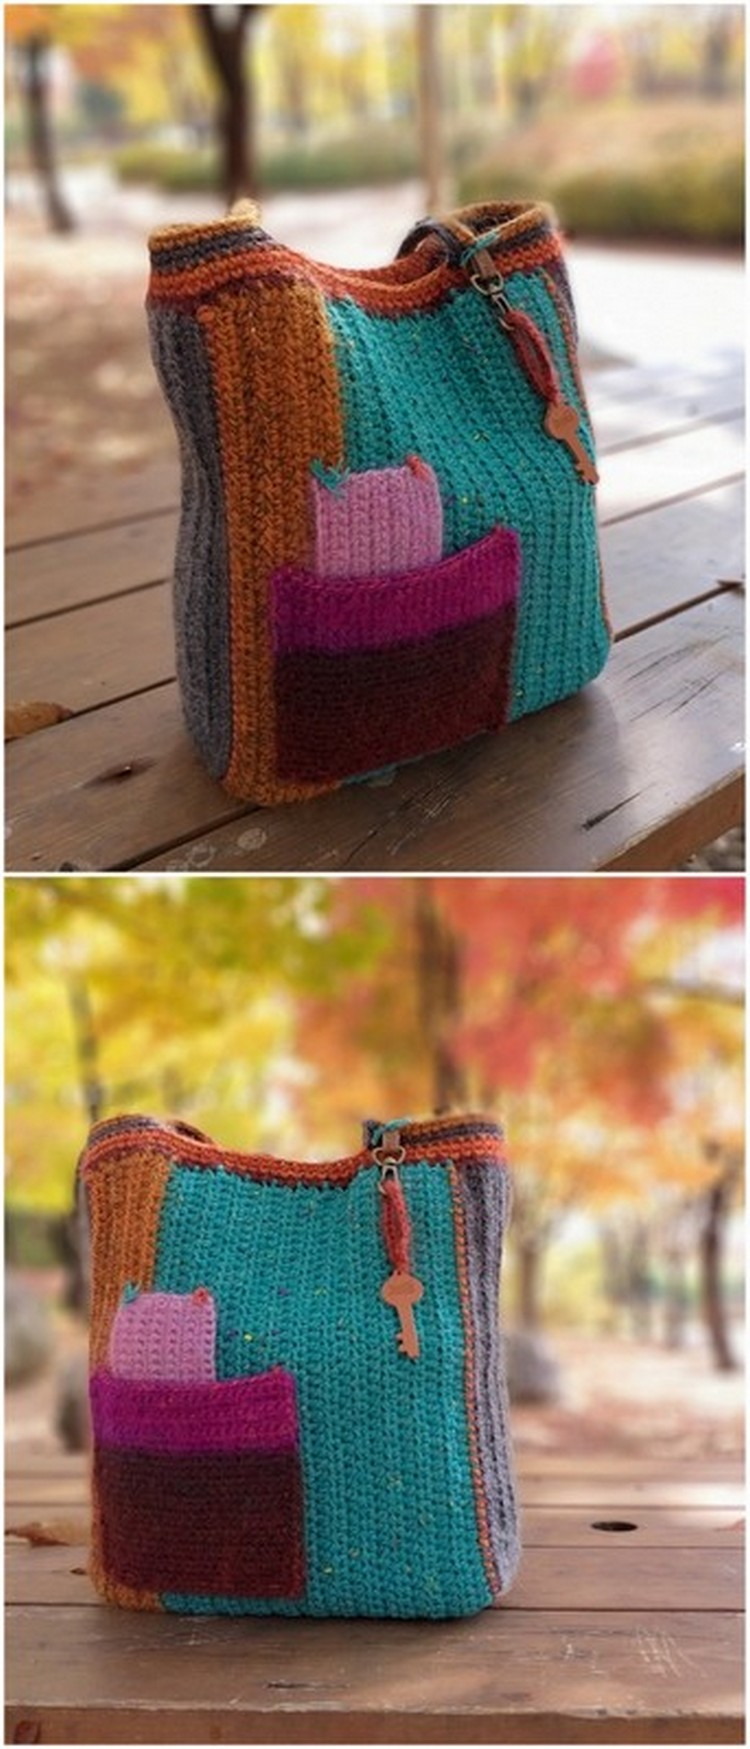 Simple School Bag Free Crochet Pattern